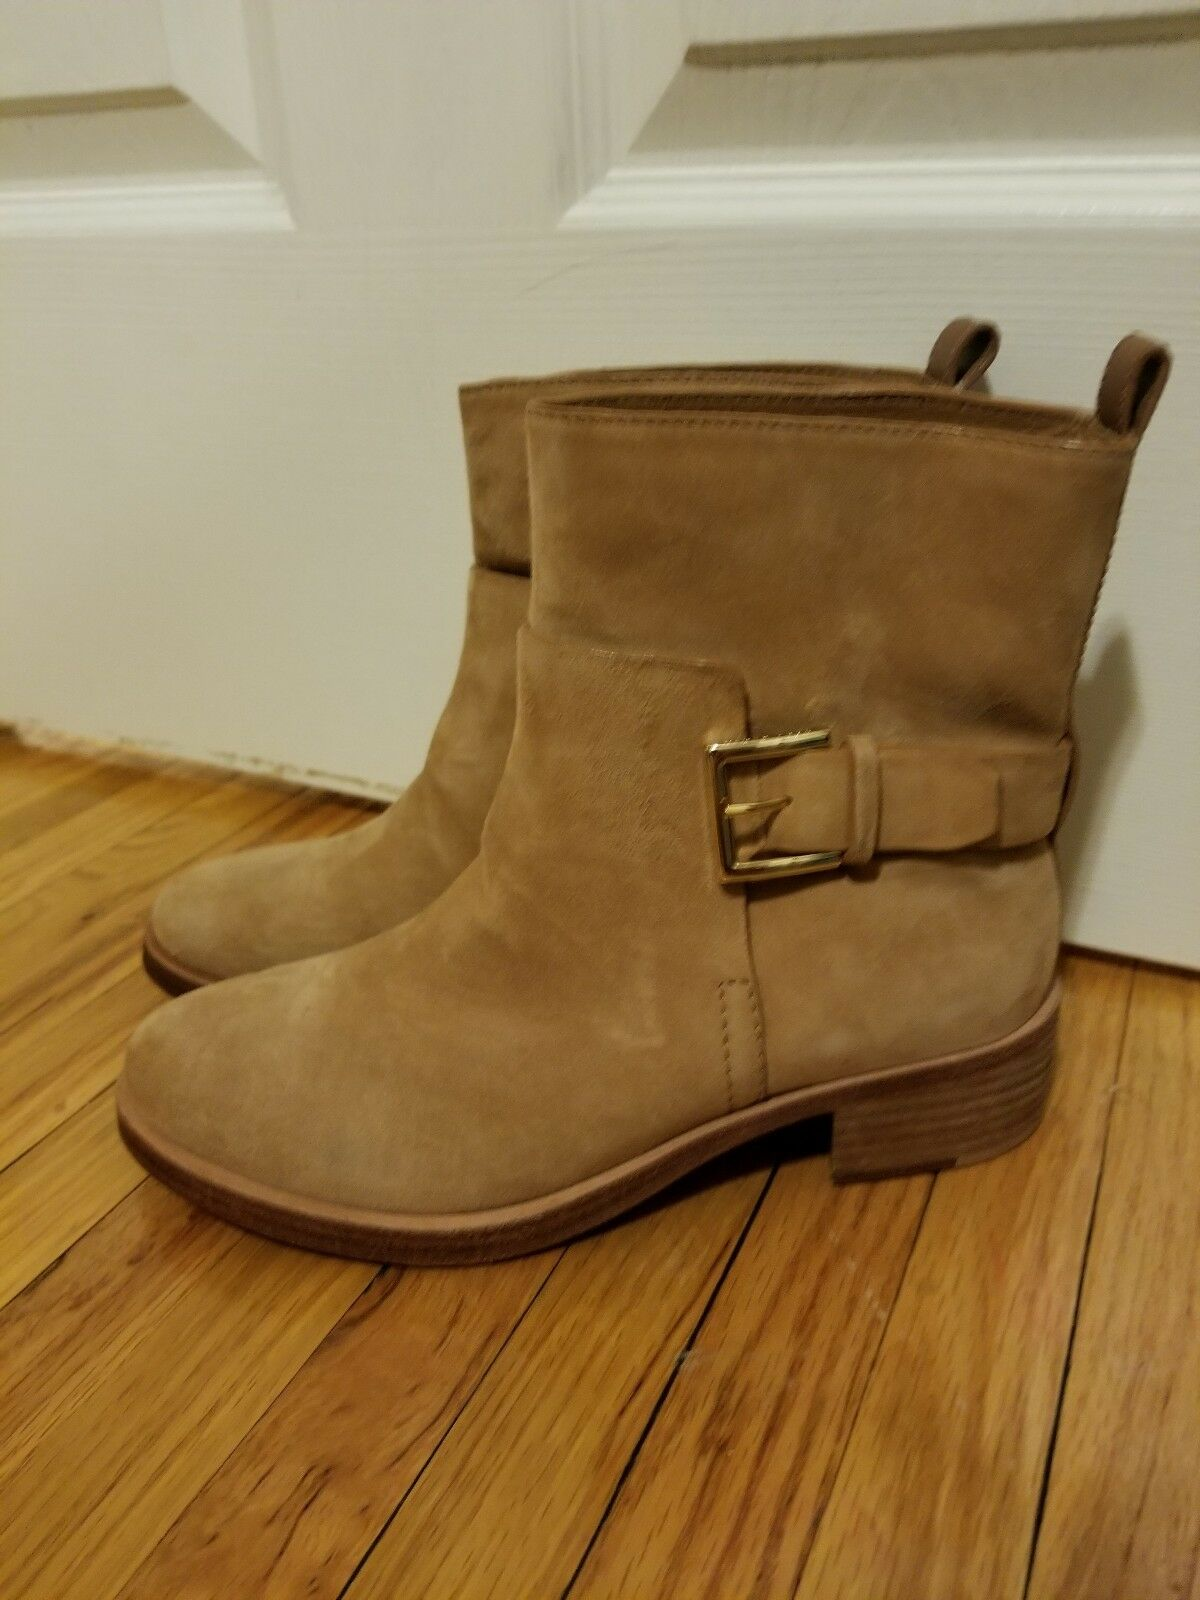 Tory Burch Suede Ankle Bootie, Perfect Sand boots size 5.5